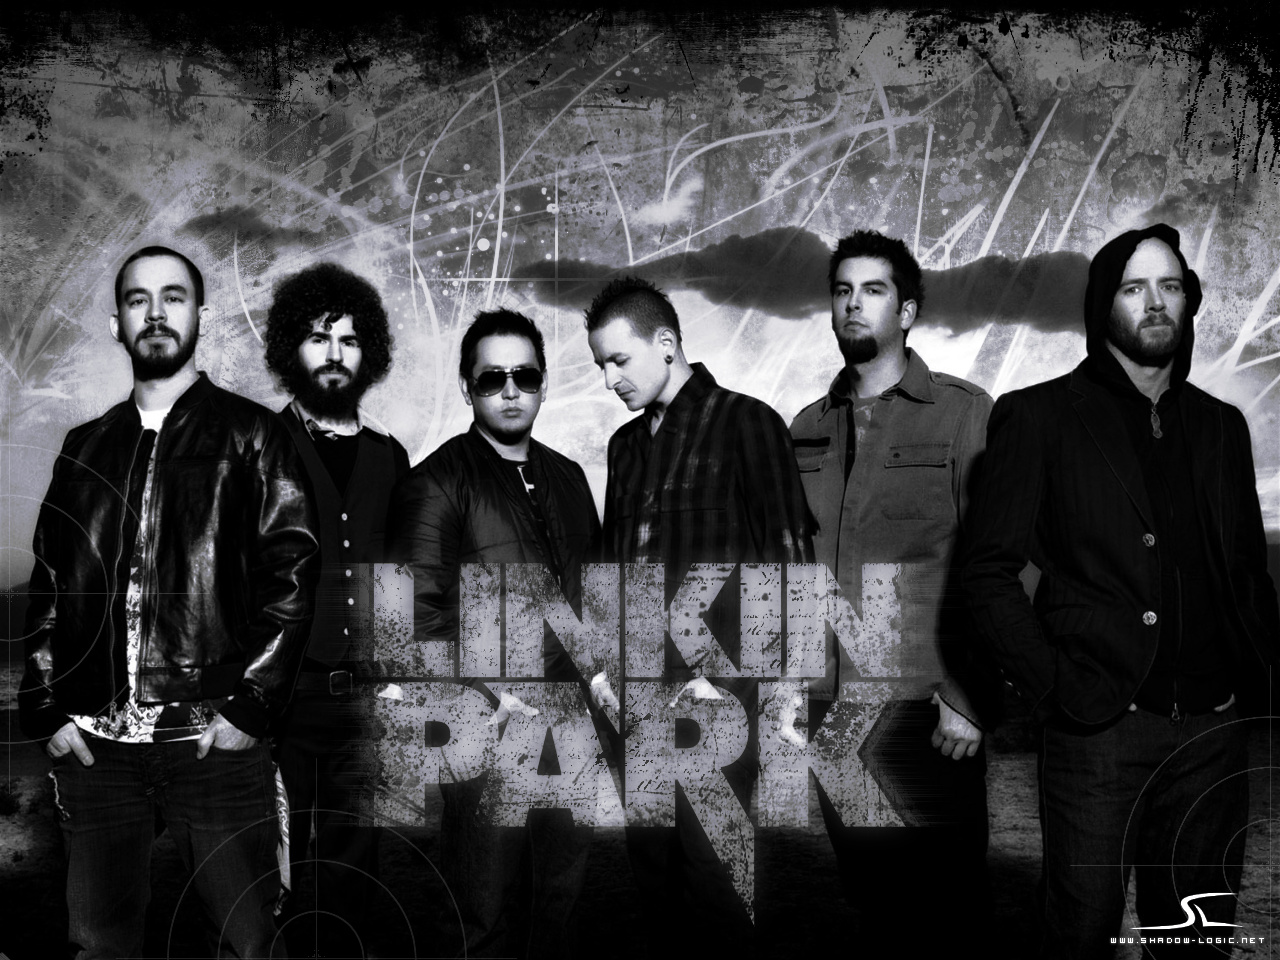 Linkin park wallpaper by gone4ever95 on deviantart linkin park wallpaper by gone4ever95 linkin park wallpaper by gone4ever95 stopboris Image collections